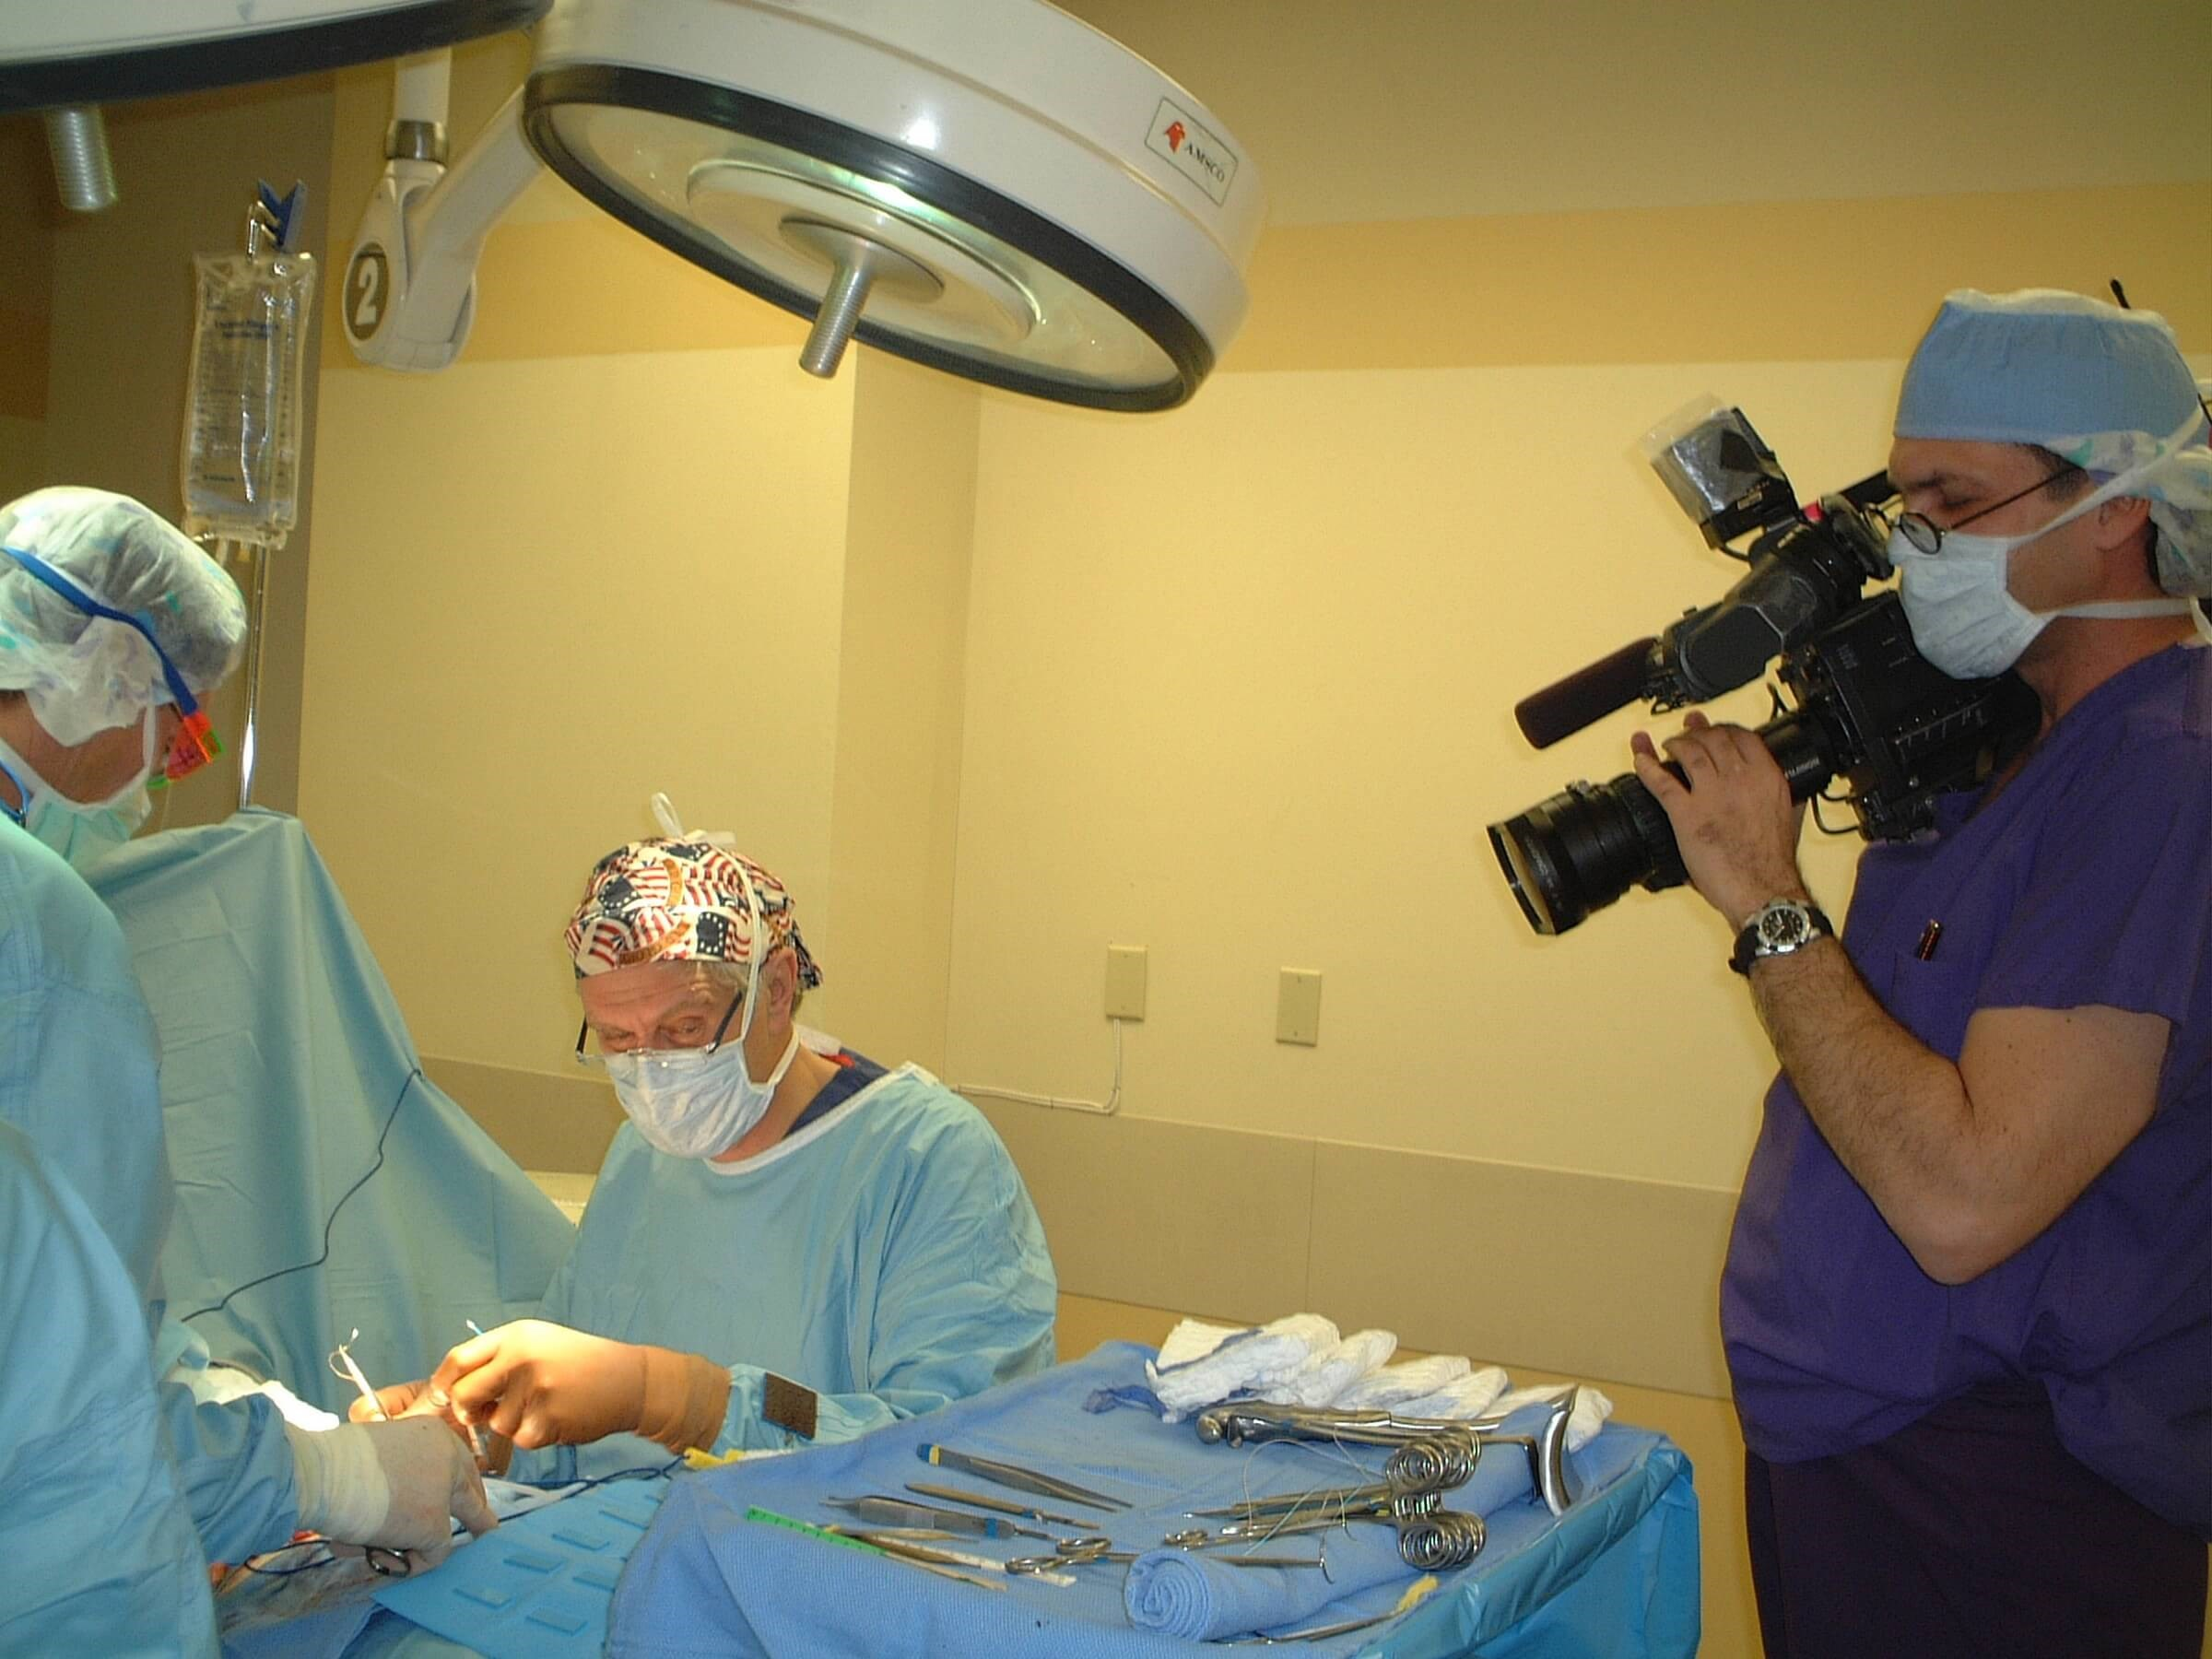 Newport Beach Tummy Tuck During Surgery